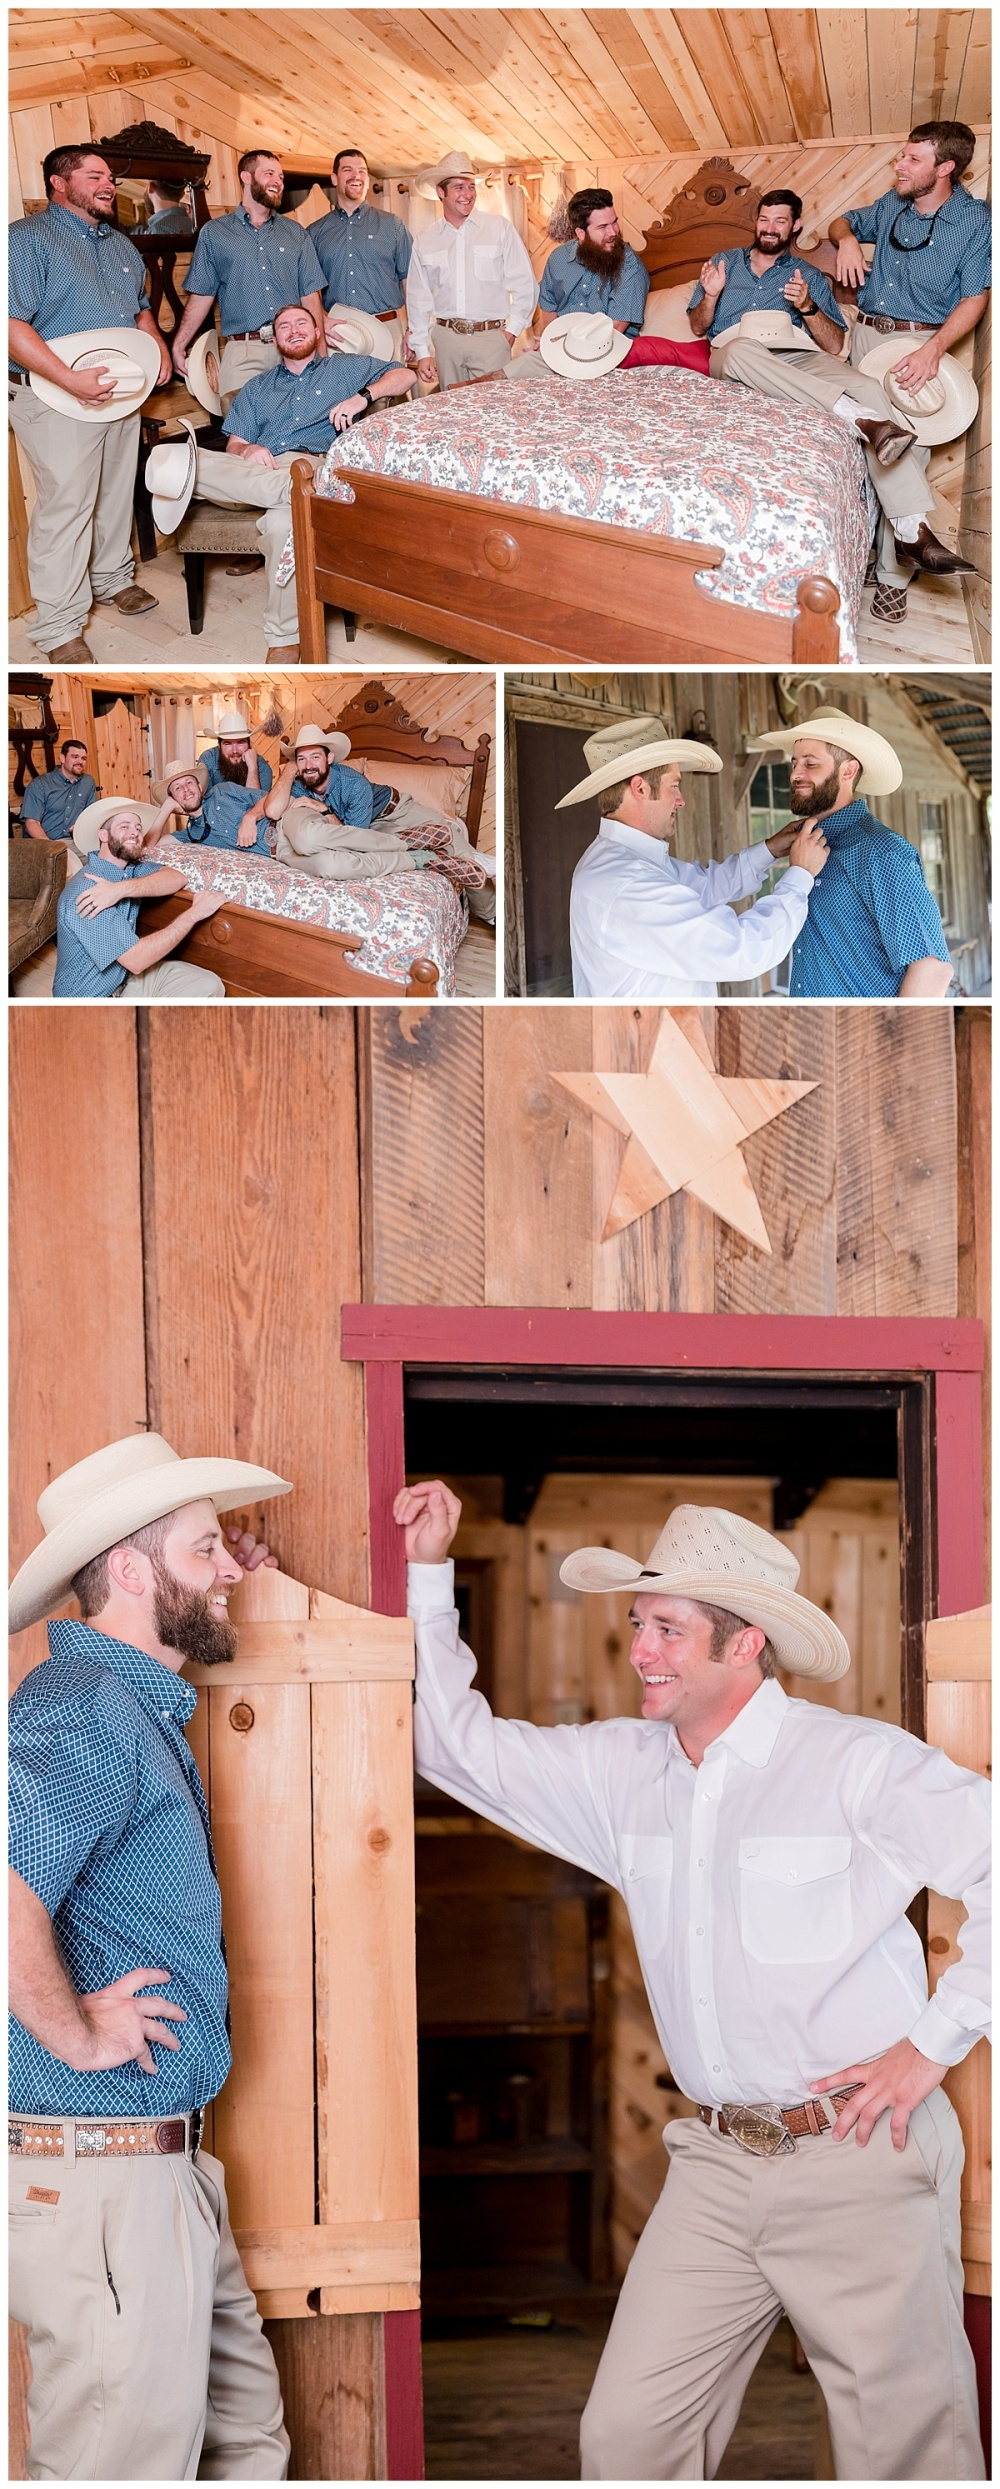 Texas-Wedding-Photographer-Braded-T-Ranch-Kendalia-Bride-Groom-Southwestern-Style-Carly-Barton-Photography-Vogt_0022.jpg